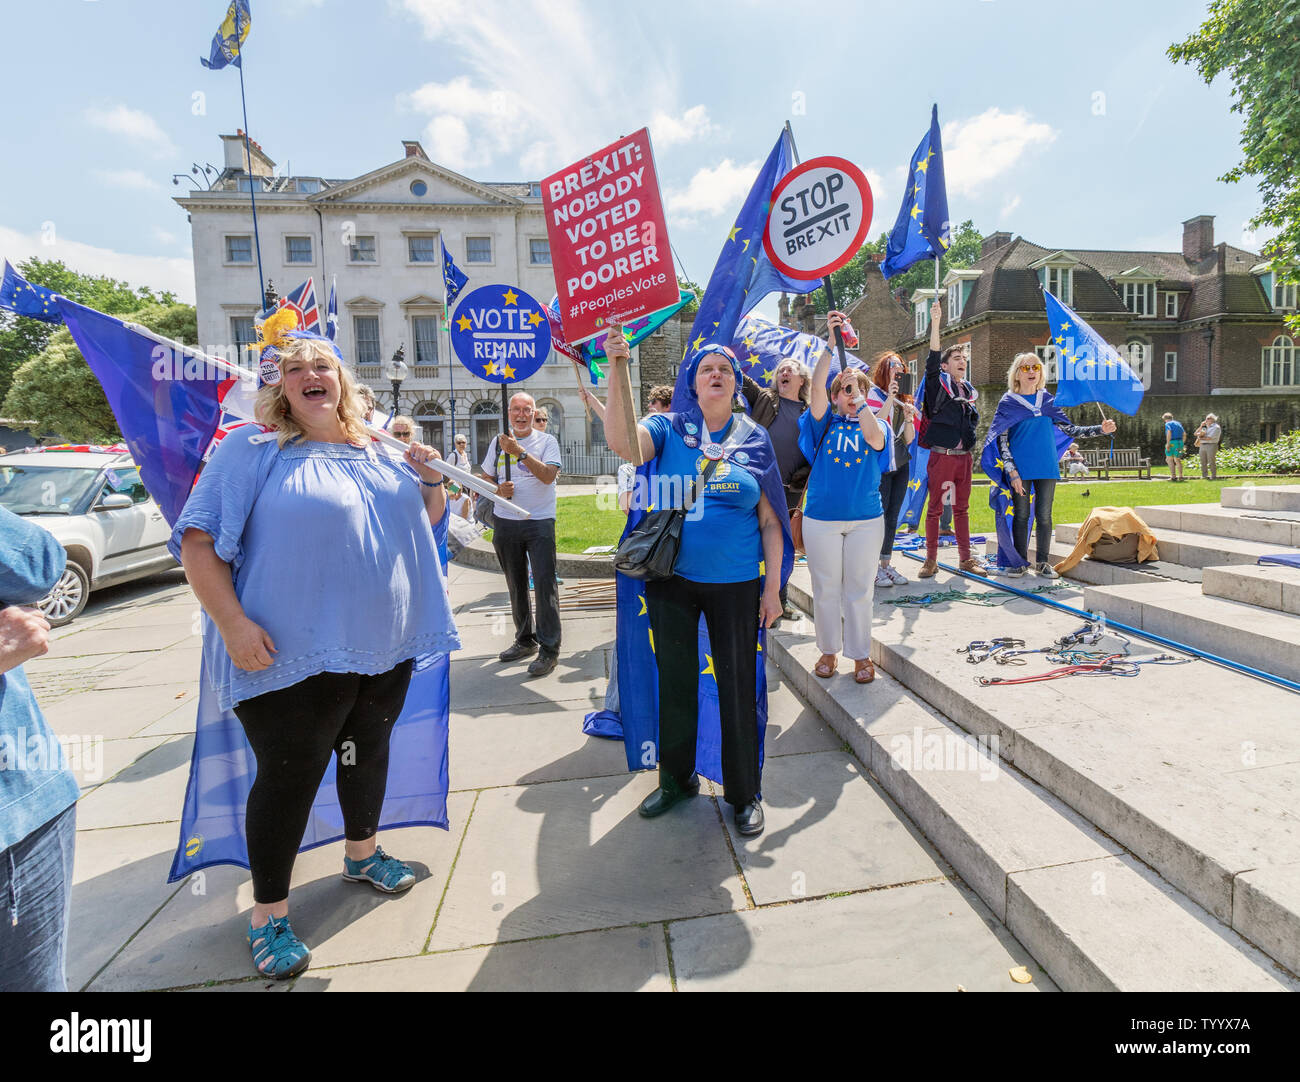 London / UK - June 26th 2019 - Pro-EU anti-Brexit protesters holding European Union flags and stop Brexit signs opposite Parliament in Westminster Stock Photo